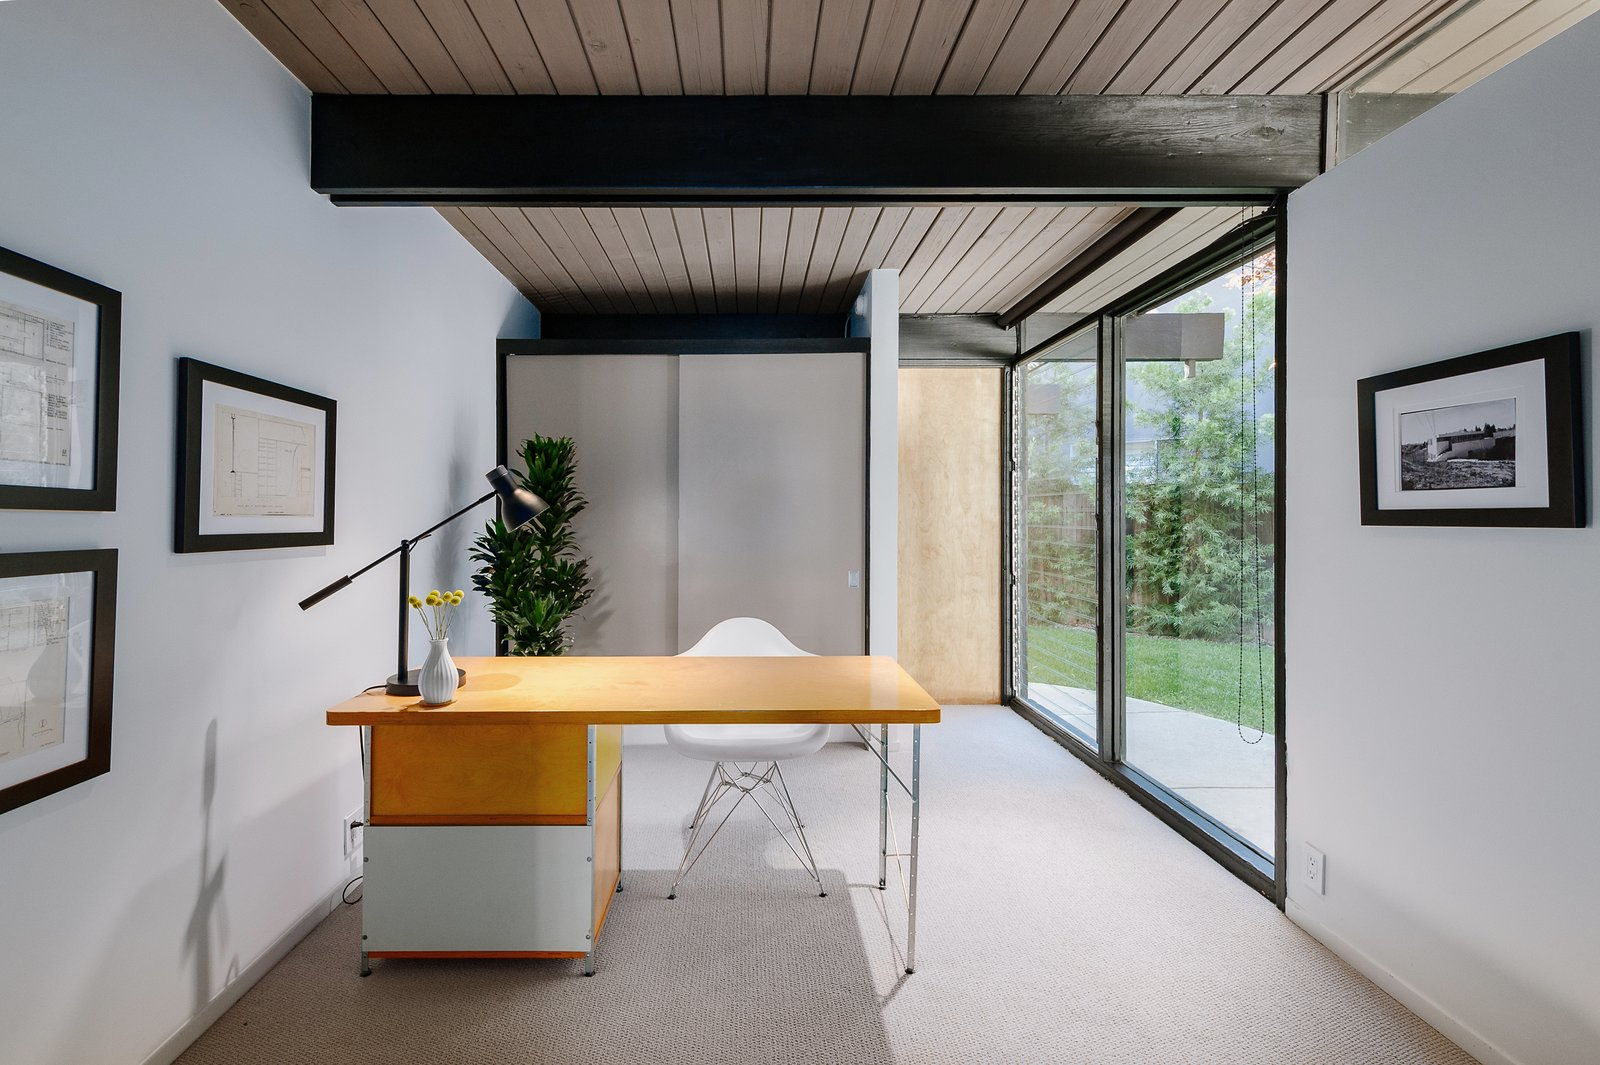 Office, Study Room Type, Desk, Chair, and Carpet Floor The third bedroom is currently configured as office space.     Photo 8 of 9 in Picture Yourself in This Historic L.A. Midcentury For $2.6M